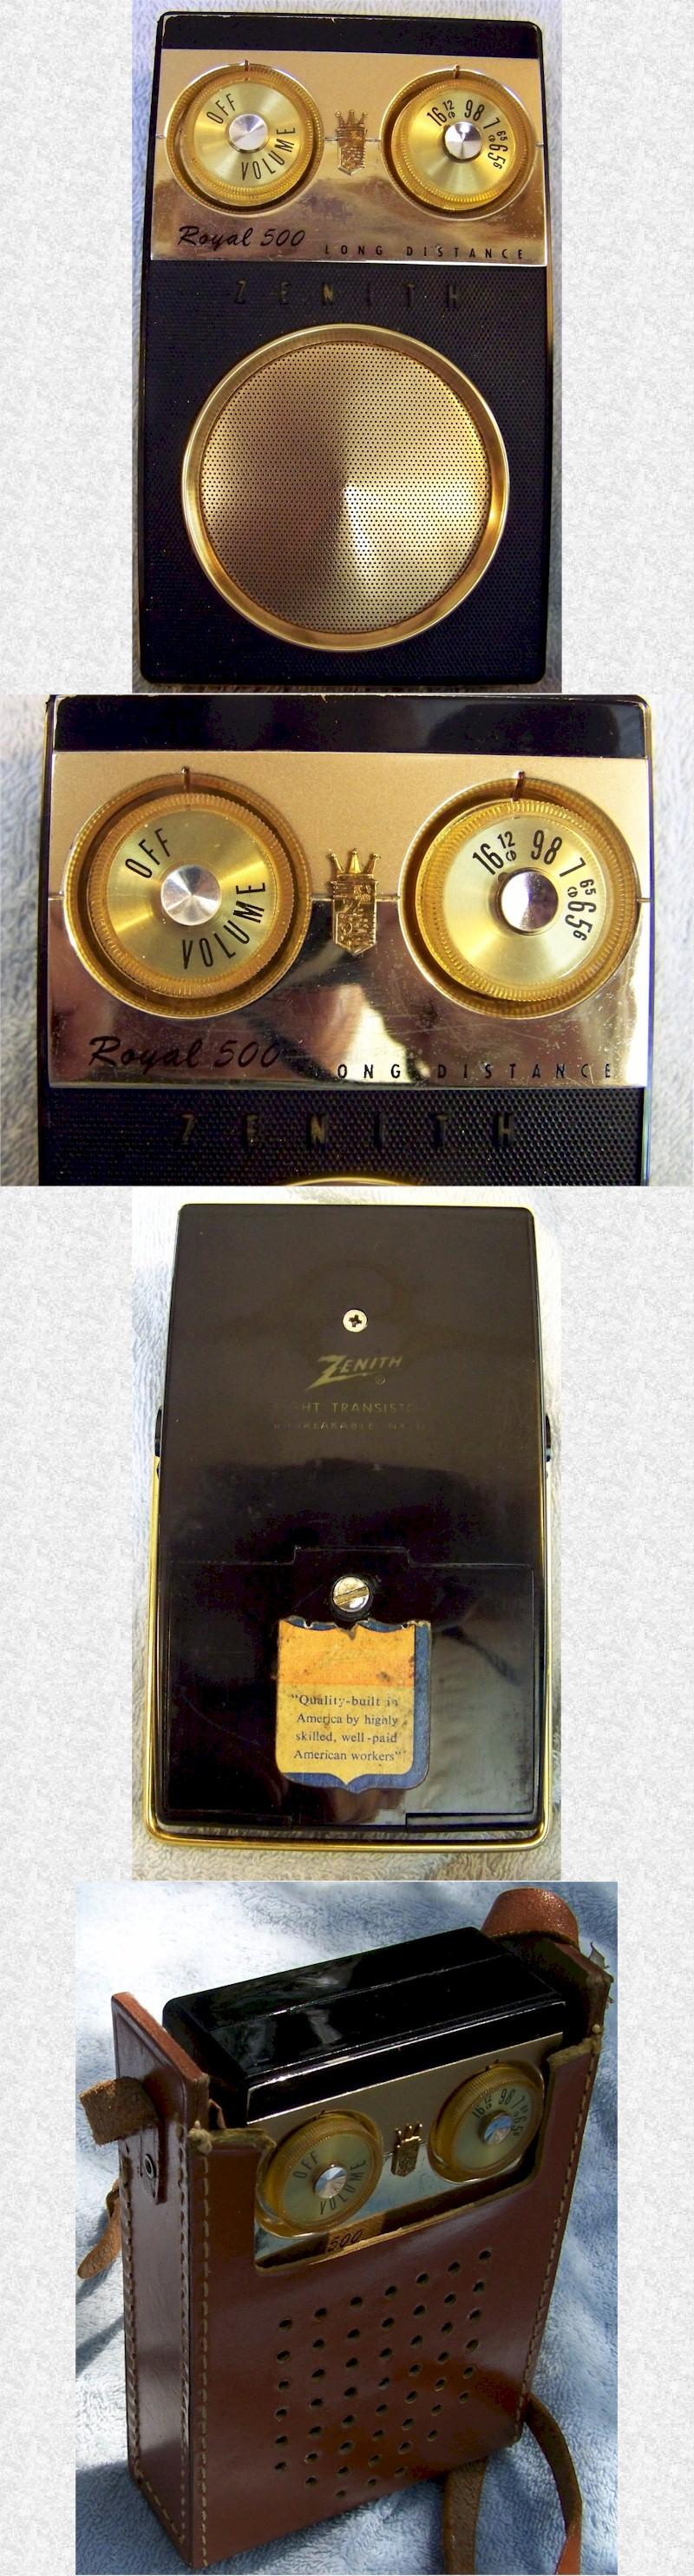 Zenith Royal 500E Pocket Transistor (1959)